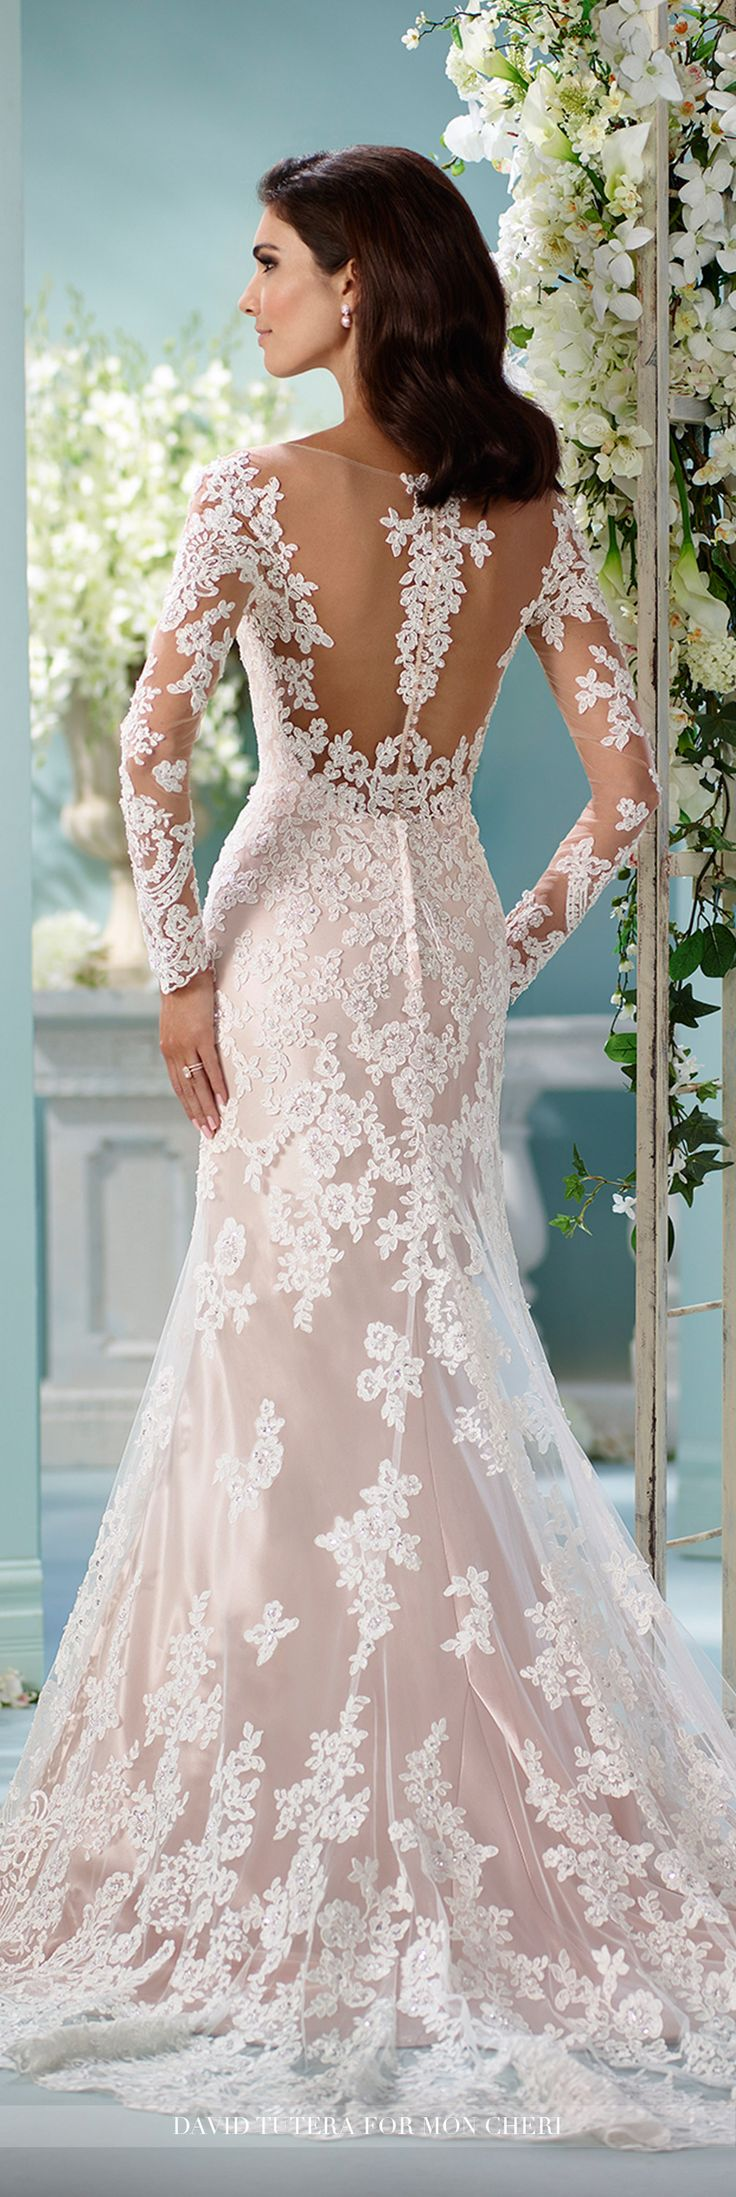 Plus Size Wedding Dresses Mn Wonderful Wedding Dresses